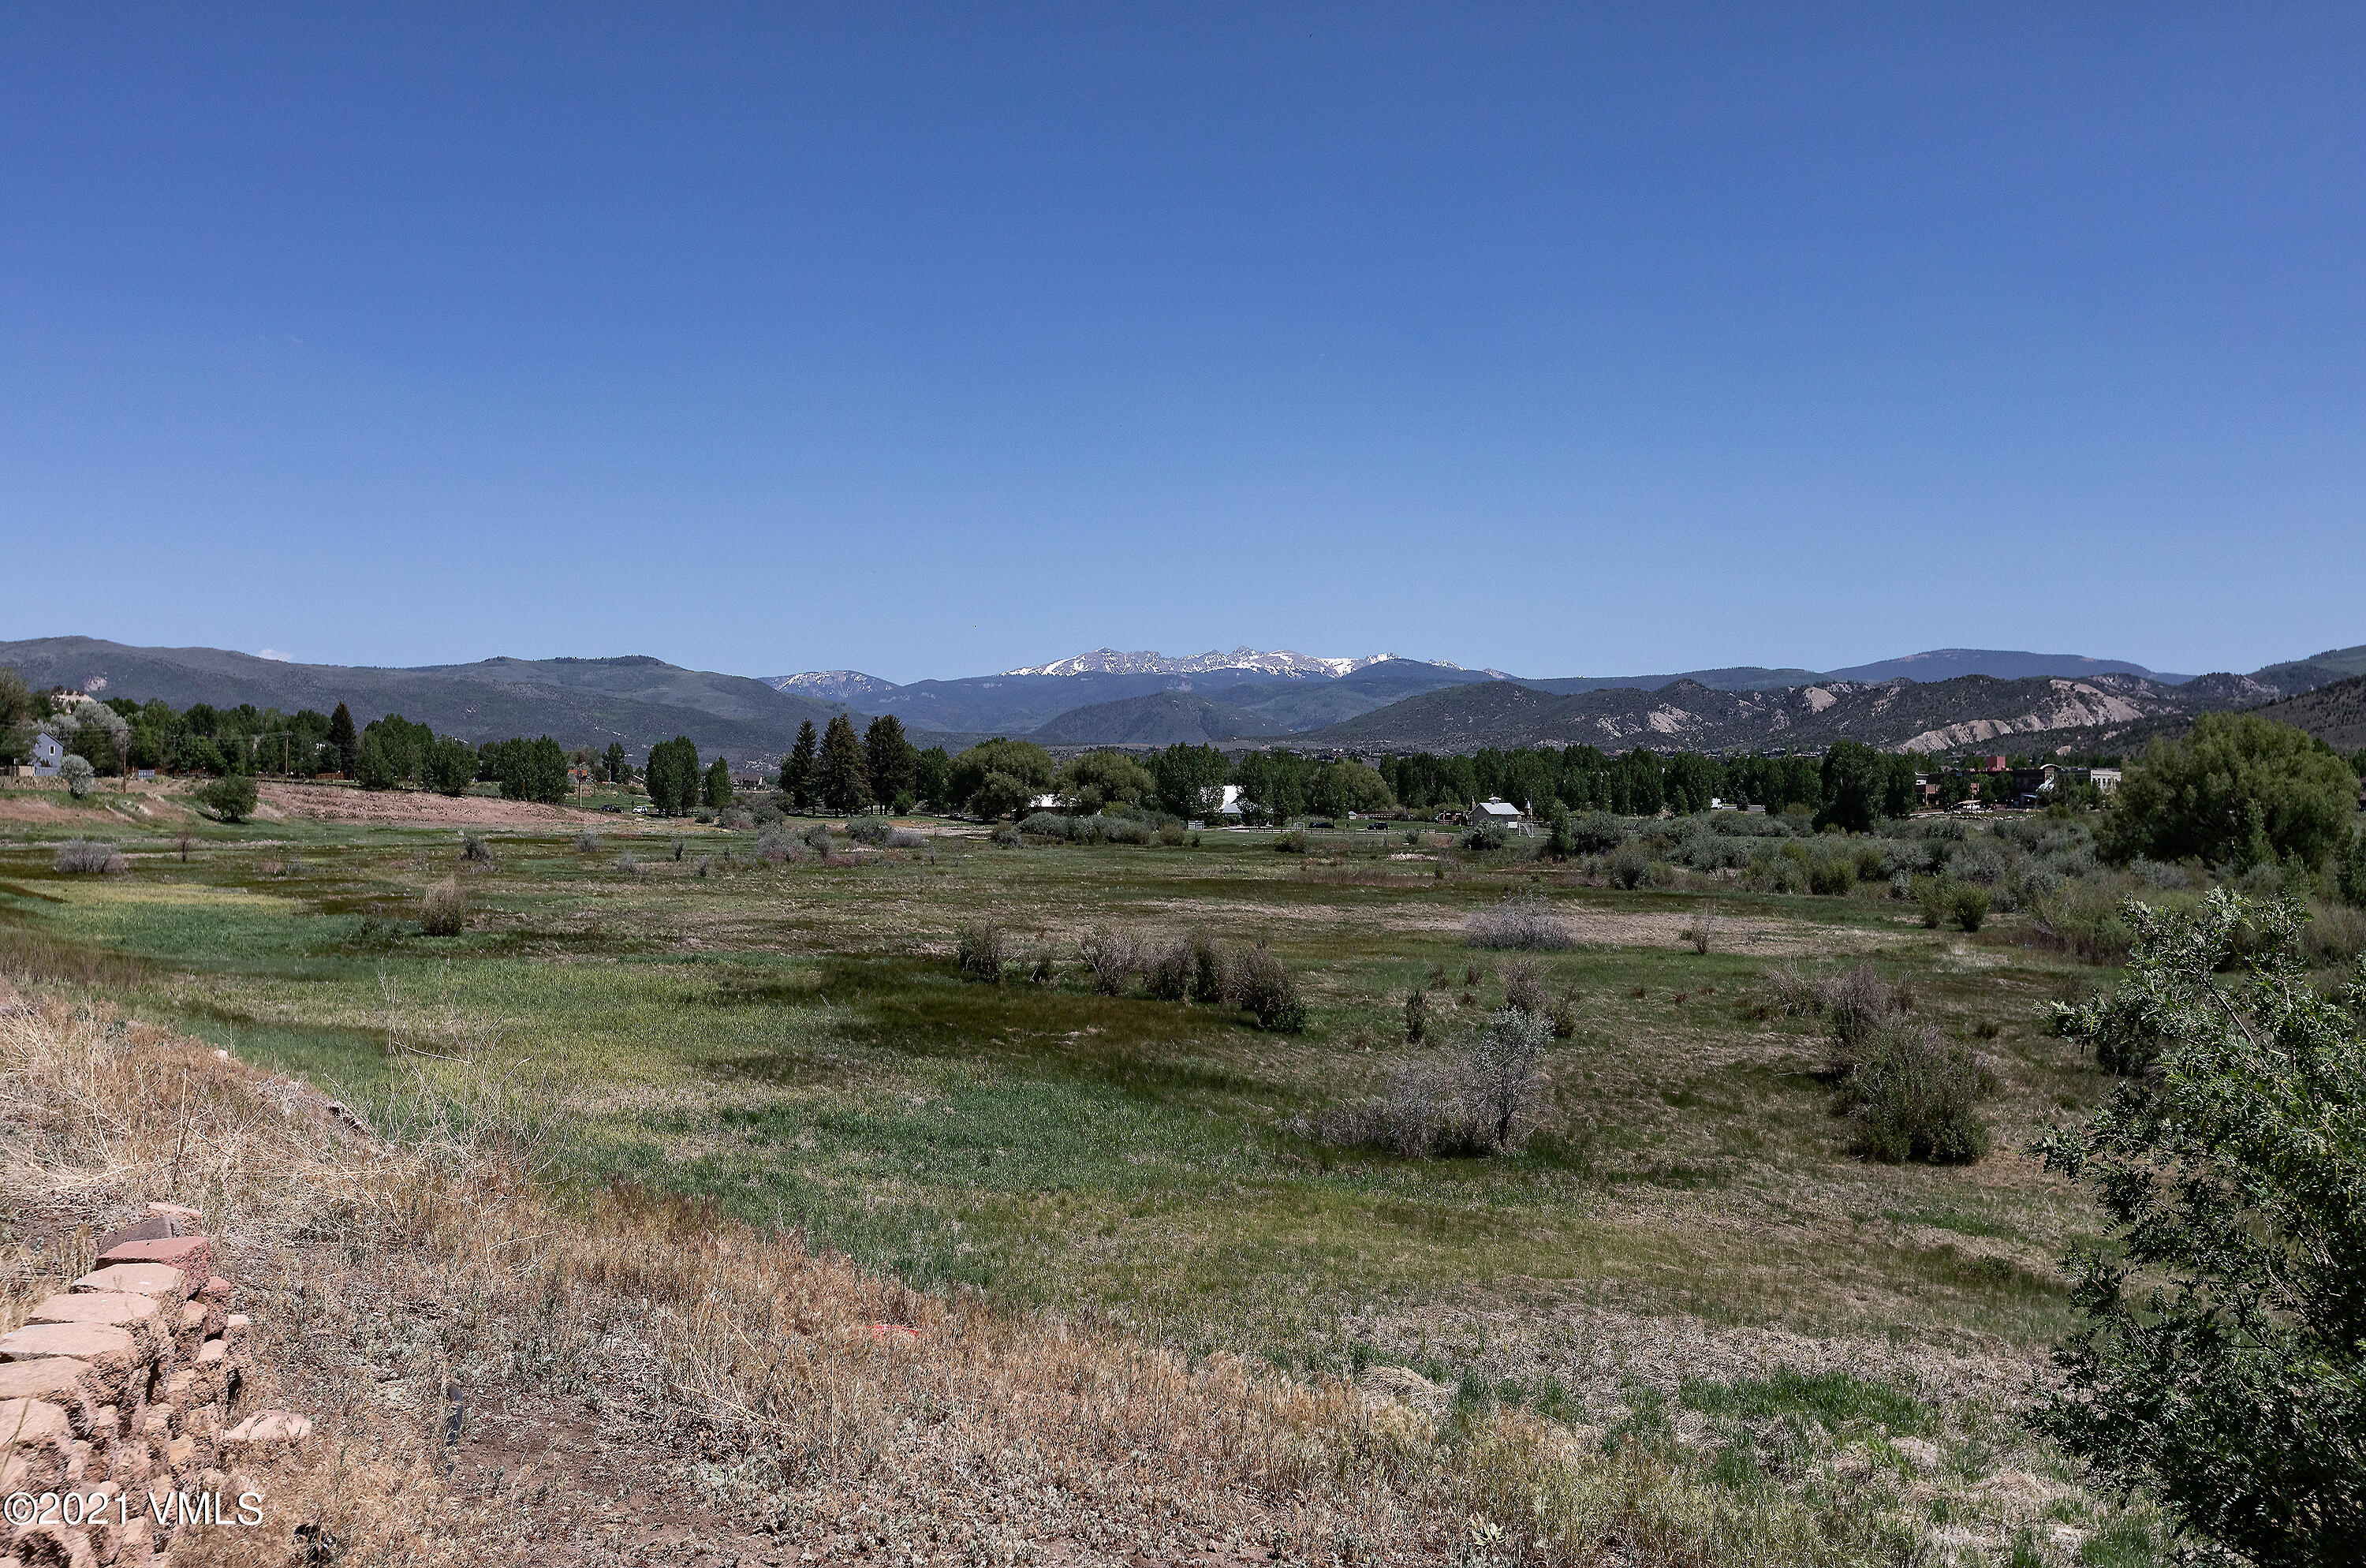 Picturesque views await you at this 2-bedroom and 2-bathroom residence.  It is situated on more than a third of an acre of land without any HOA.  Enjoy sights of the mountains, meadow, and creek from the back deck.  Take this opportunity now to own your own home or rental property.